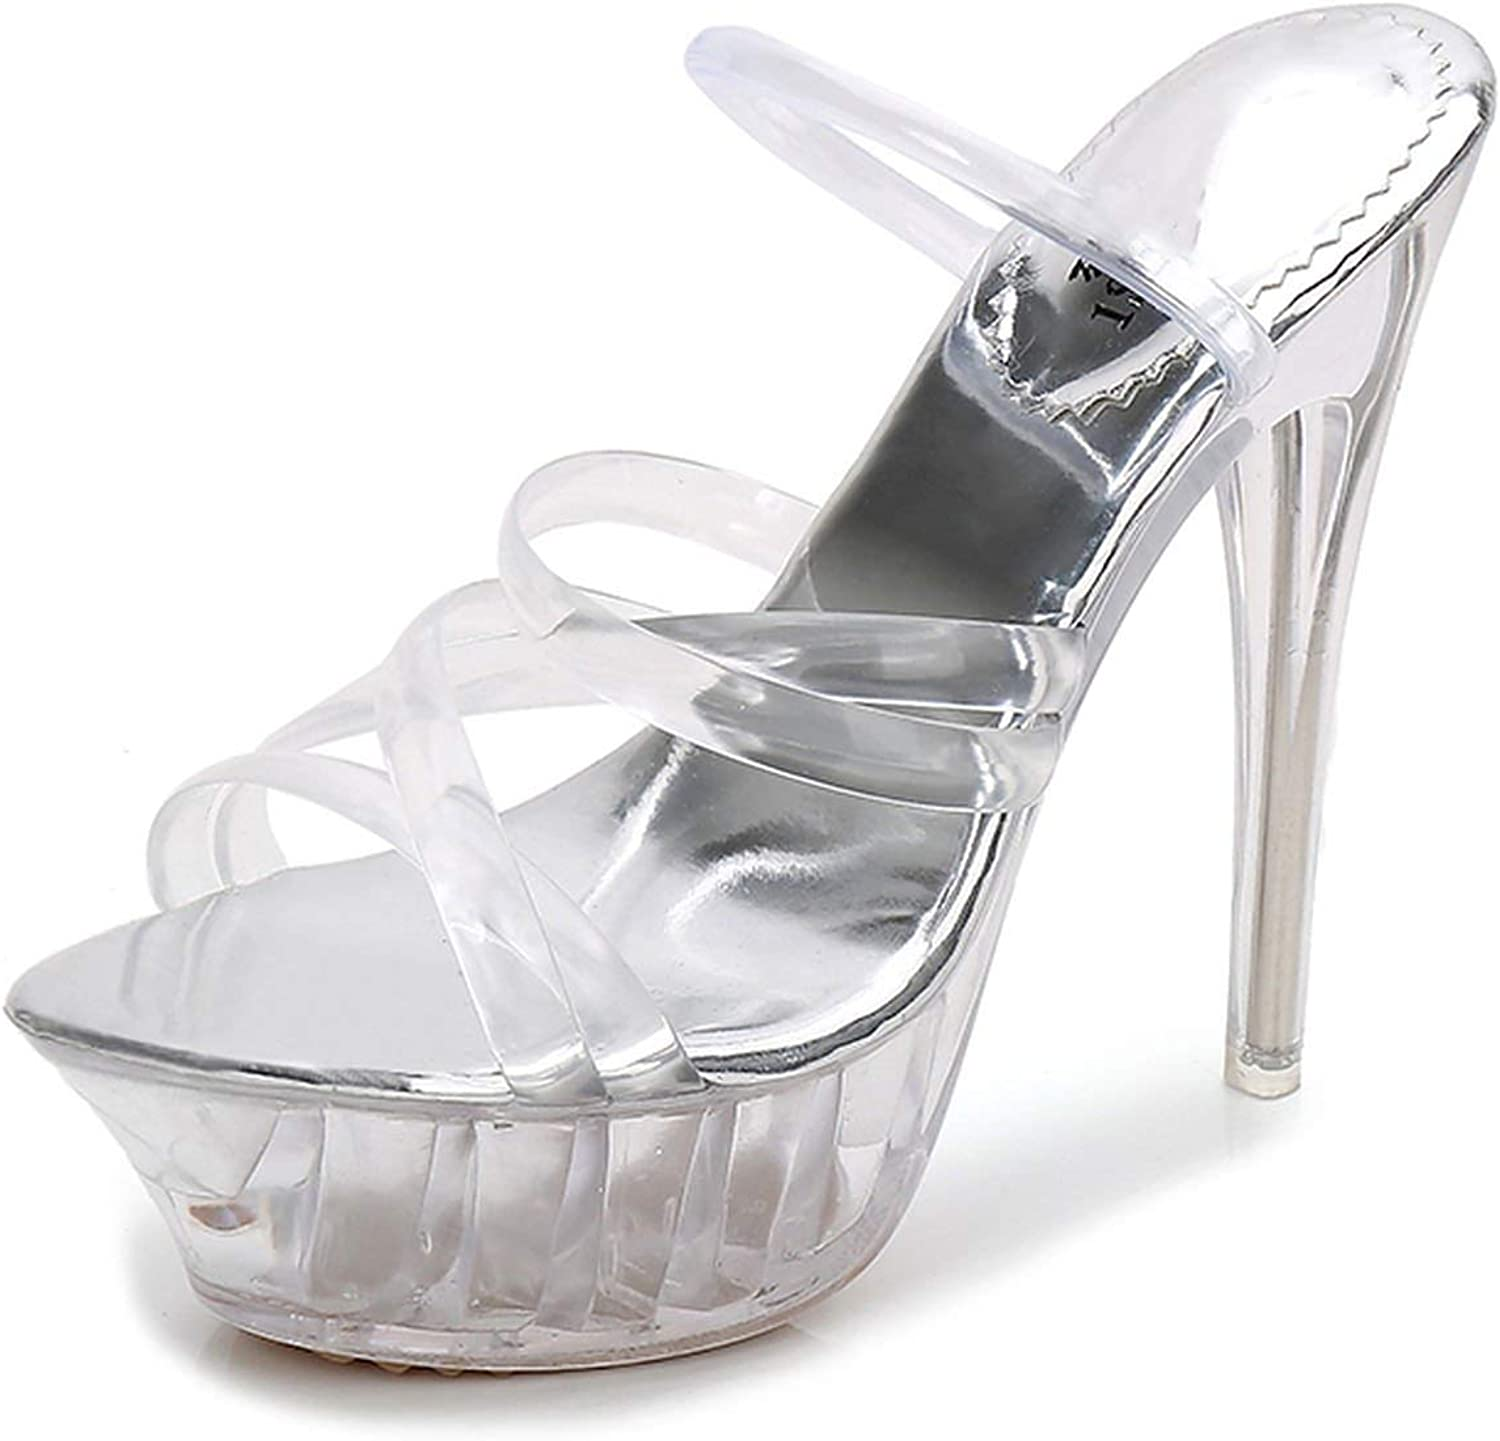 Sexy Crystal Transparent Sandals Ladies High Heeled Waterproof Platform Show Nightclub Sandals Women Slippers